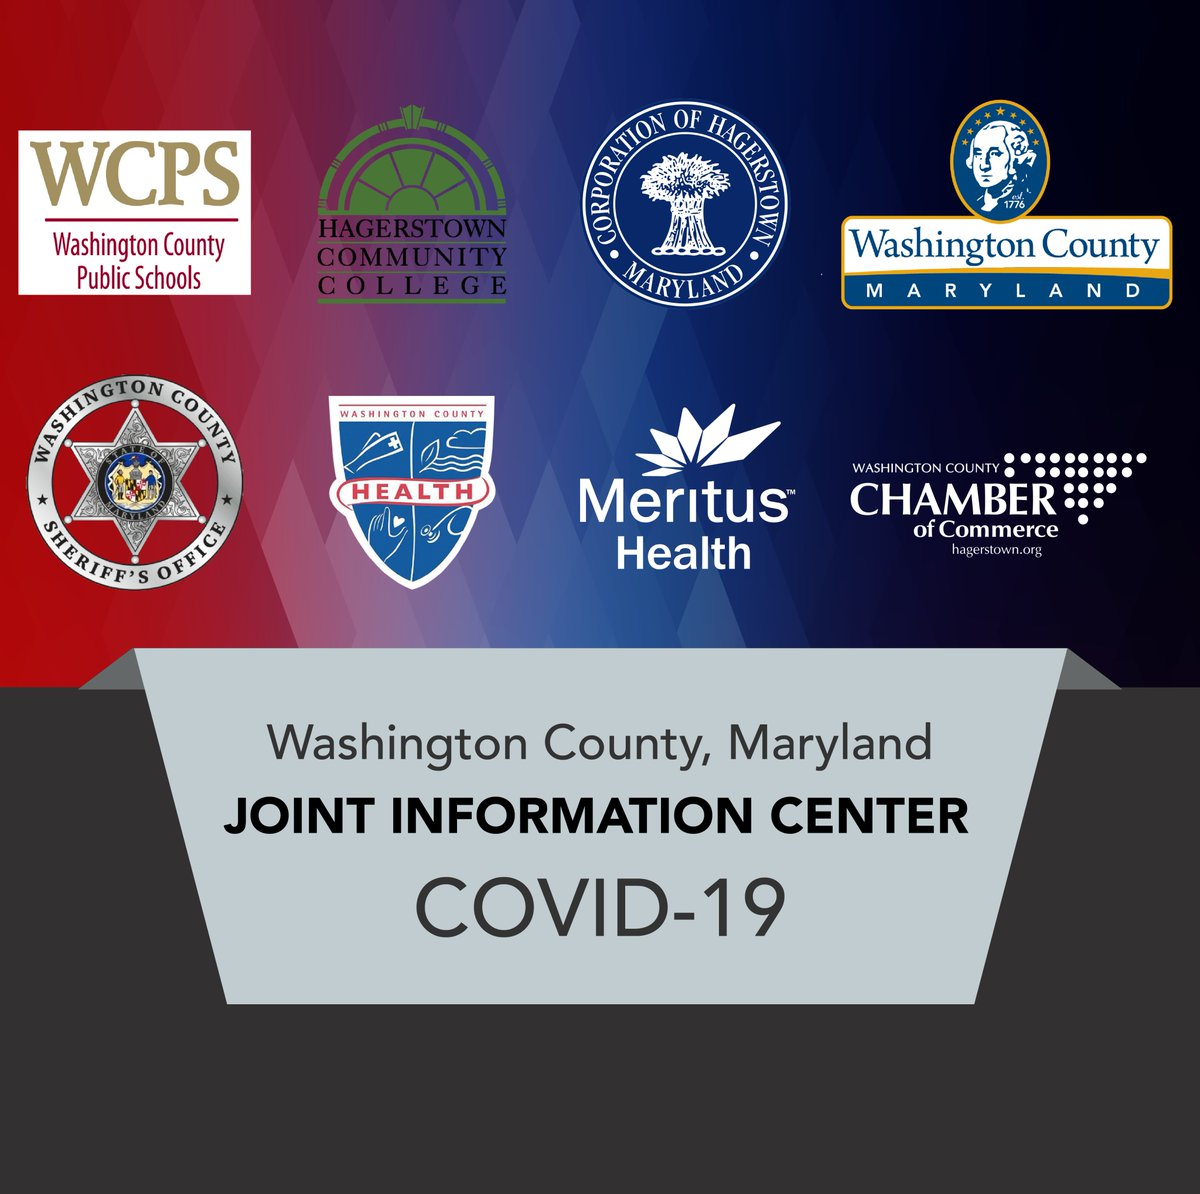 September 22, 2020 Briefing:  The Washington County, Maryland Joint Information Center (JIC) provides the following update regarding the COVID-19 pandemic.  To read the full briefing visit